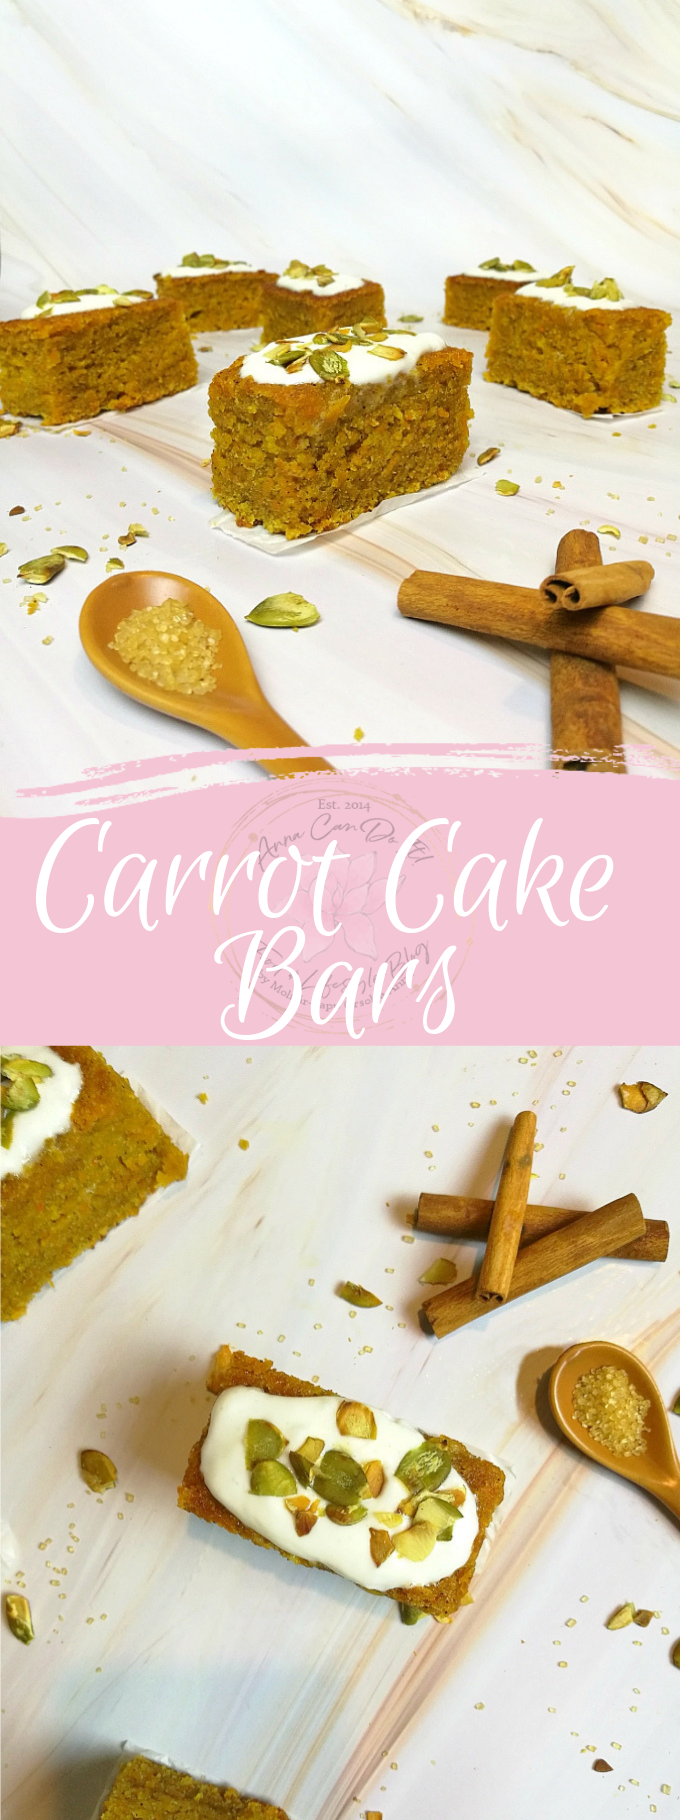 Carrot Cake Bars - Anna Can Do It!